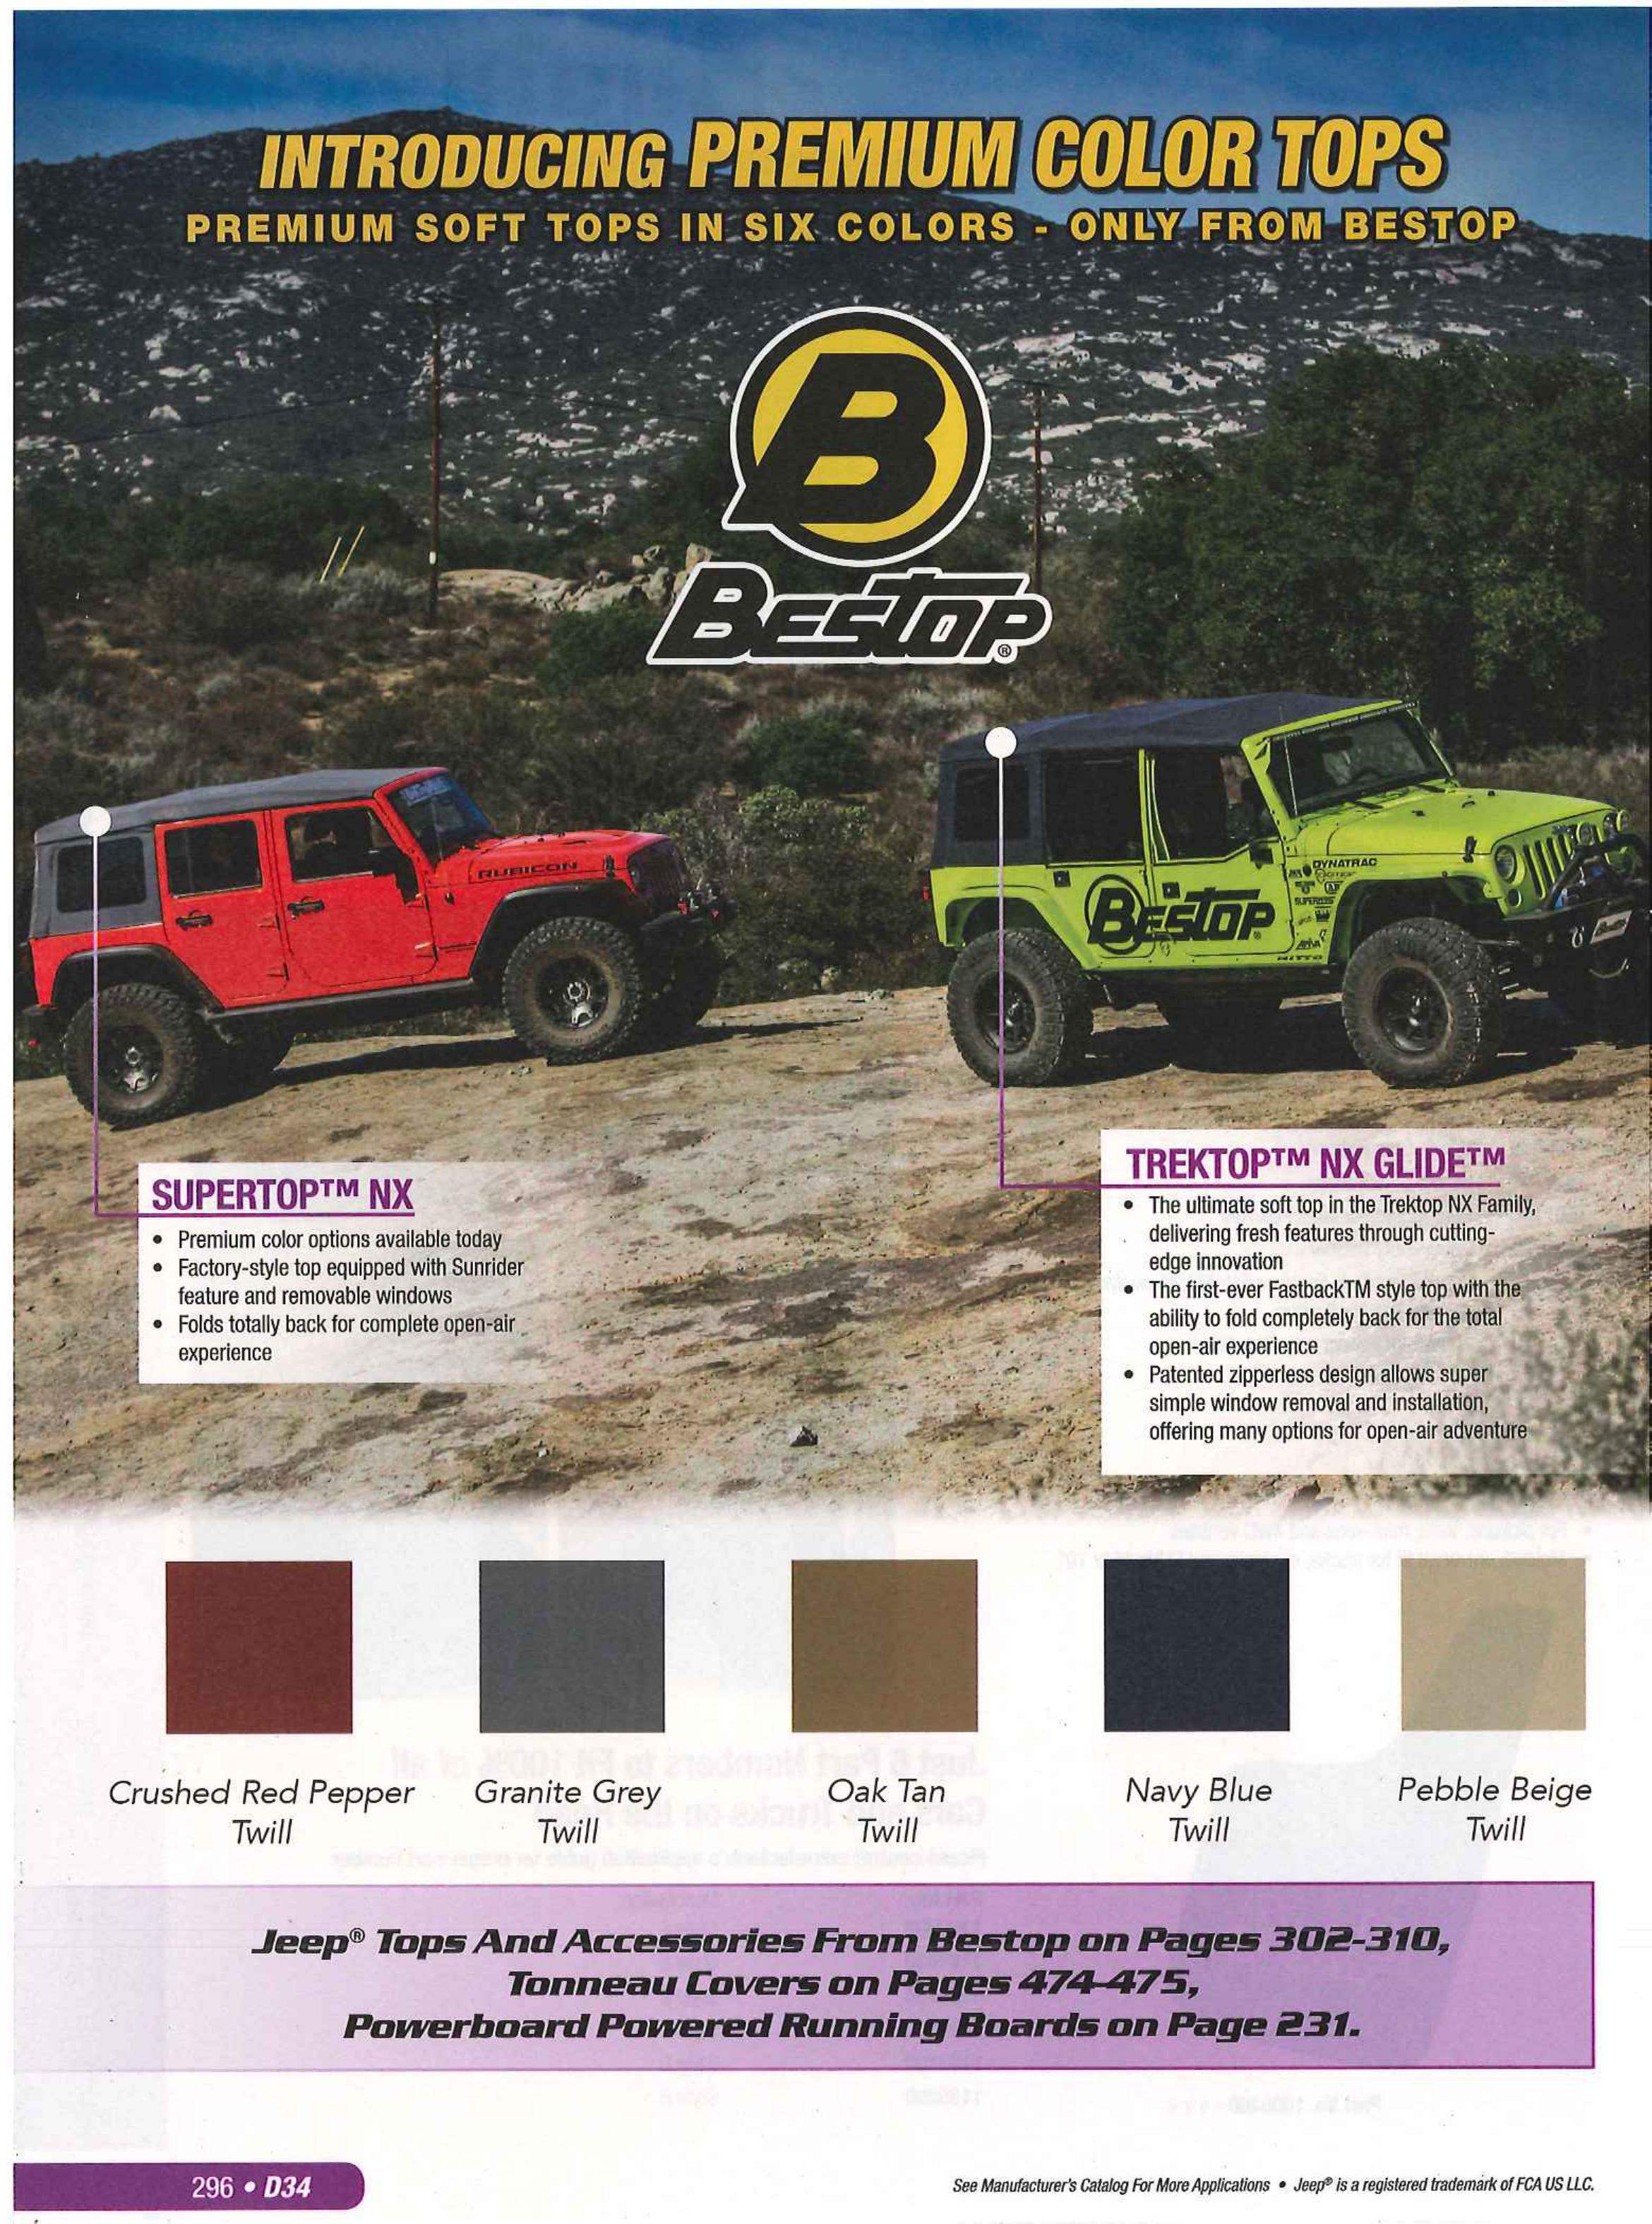 Custom Creations Truck And Car Accessories Jeep Parts And Accessories